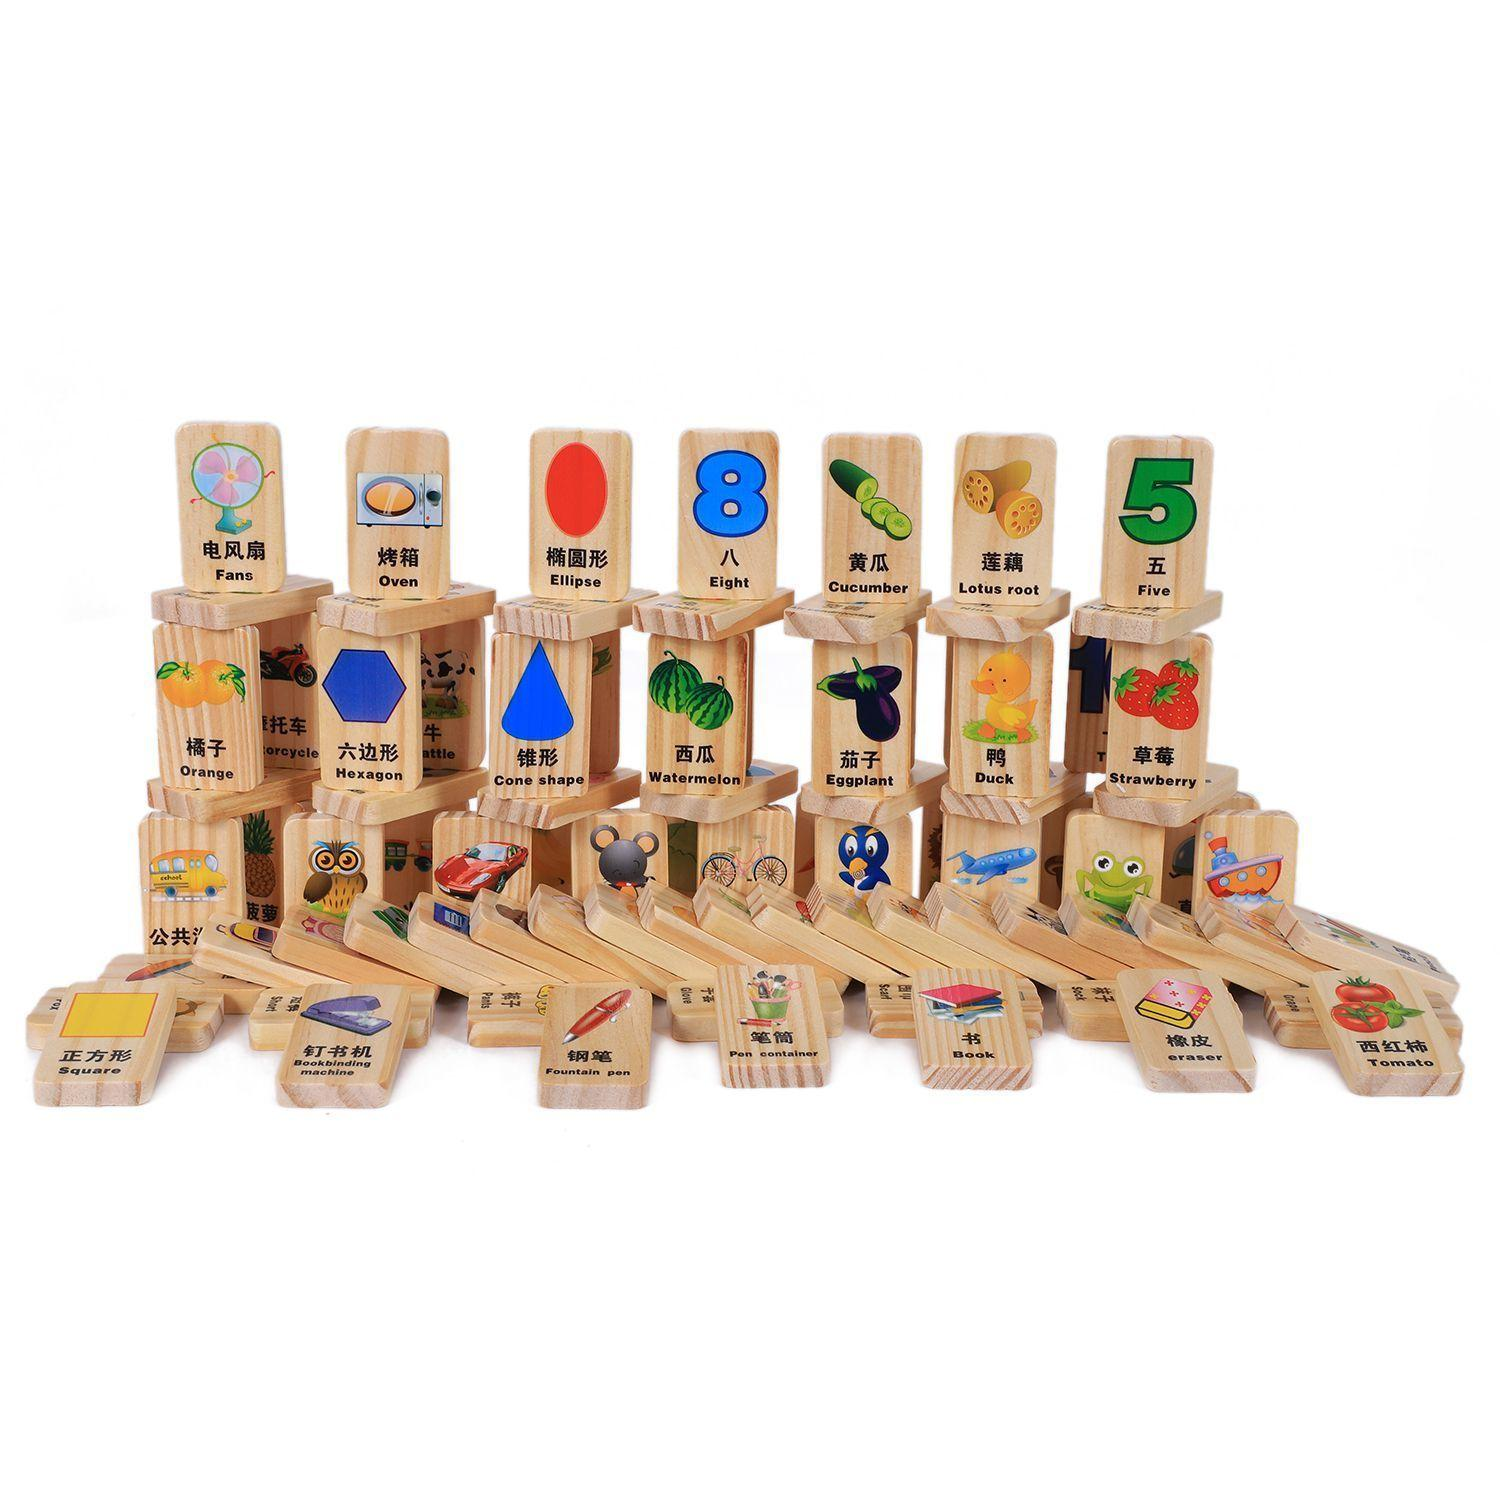 100 Pcs Wooden Blocks Domino Game Chinese Characters English Letter Animal Number Cartoon Pattern Learning Cognitive Toys,